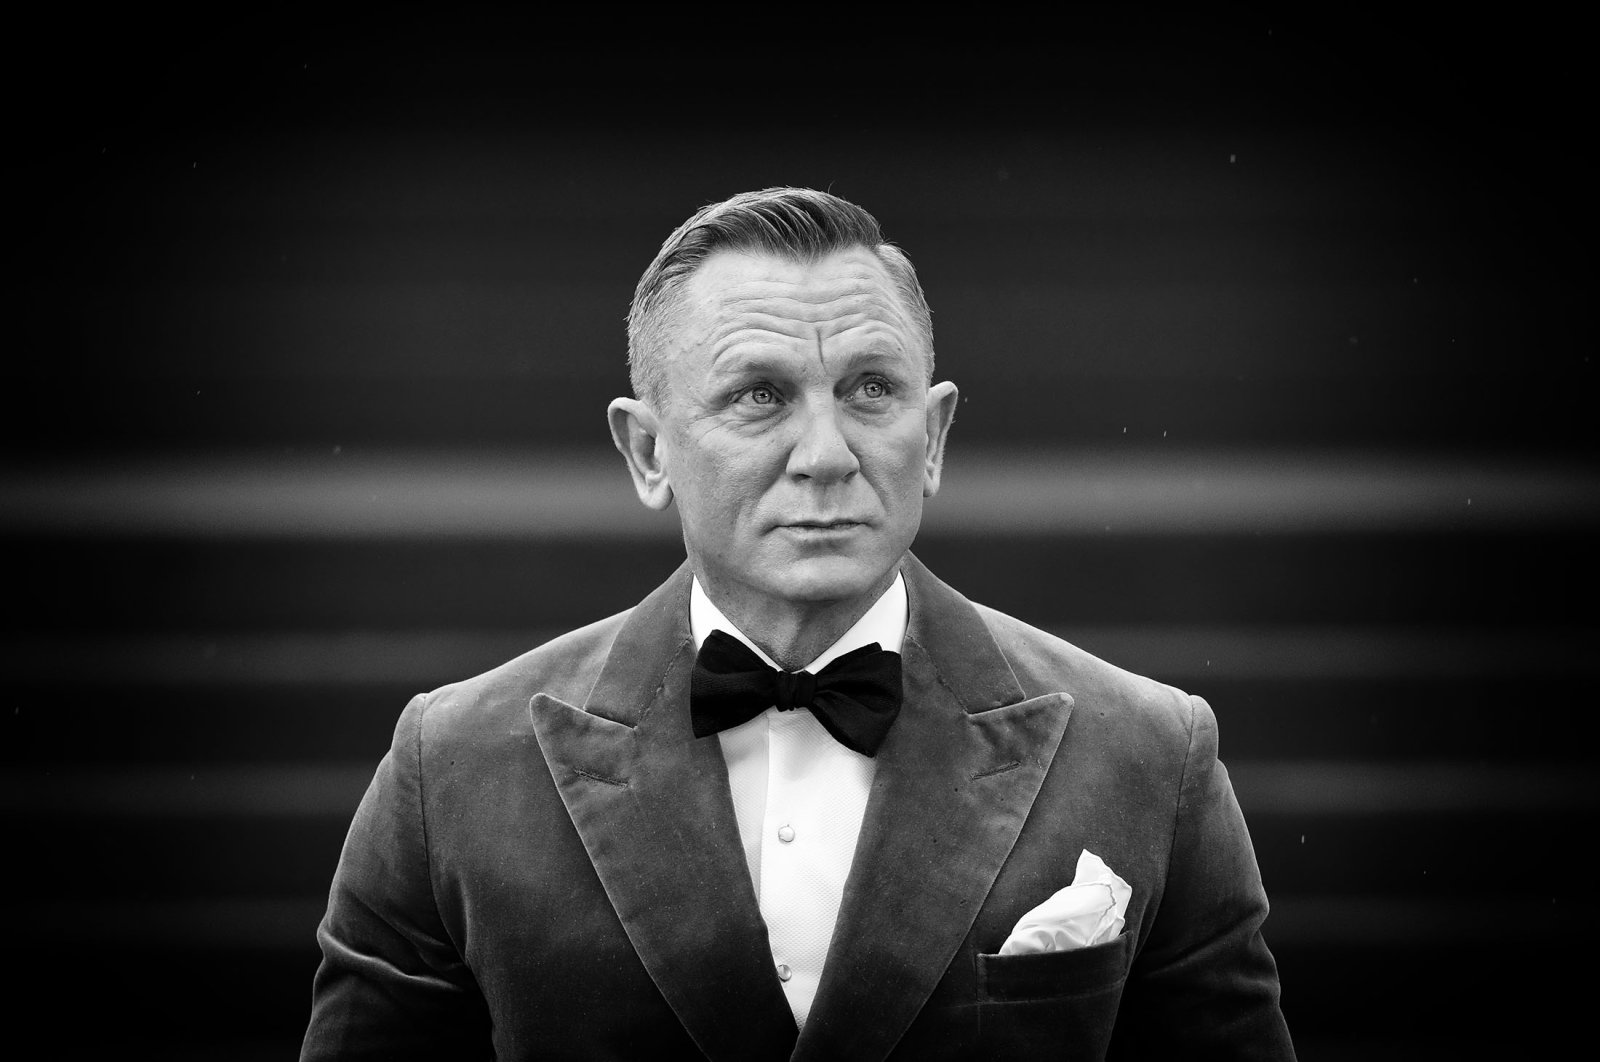 """Daniel Craig attends the World Premiere of the James Bond film, """"No Time To Die,"""" at the Royal Albert Hall, in London, U.K., Sept. 28, 2021. (Getty Images)"""